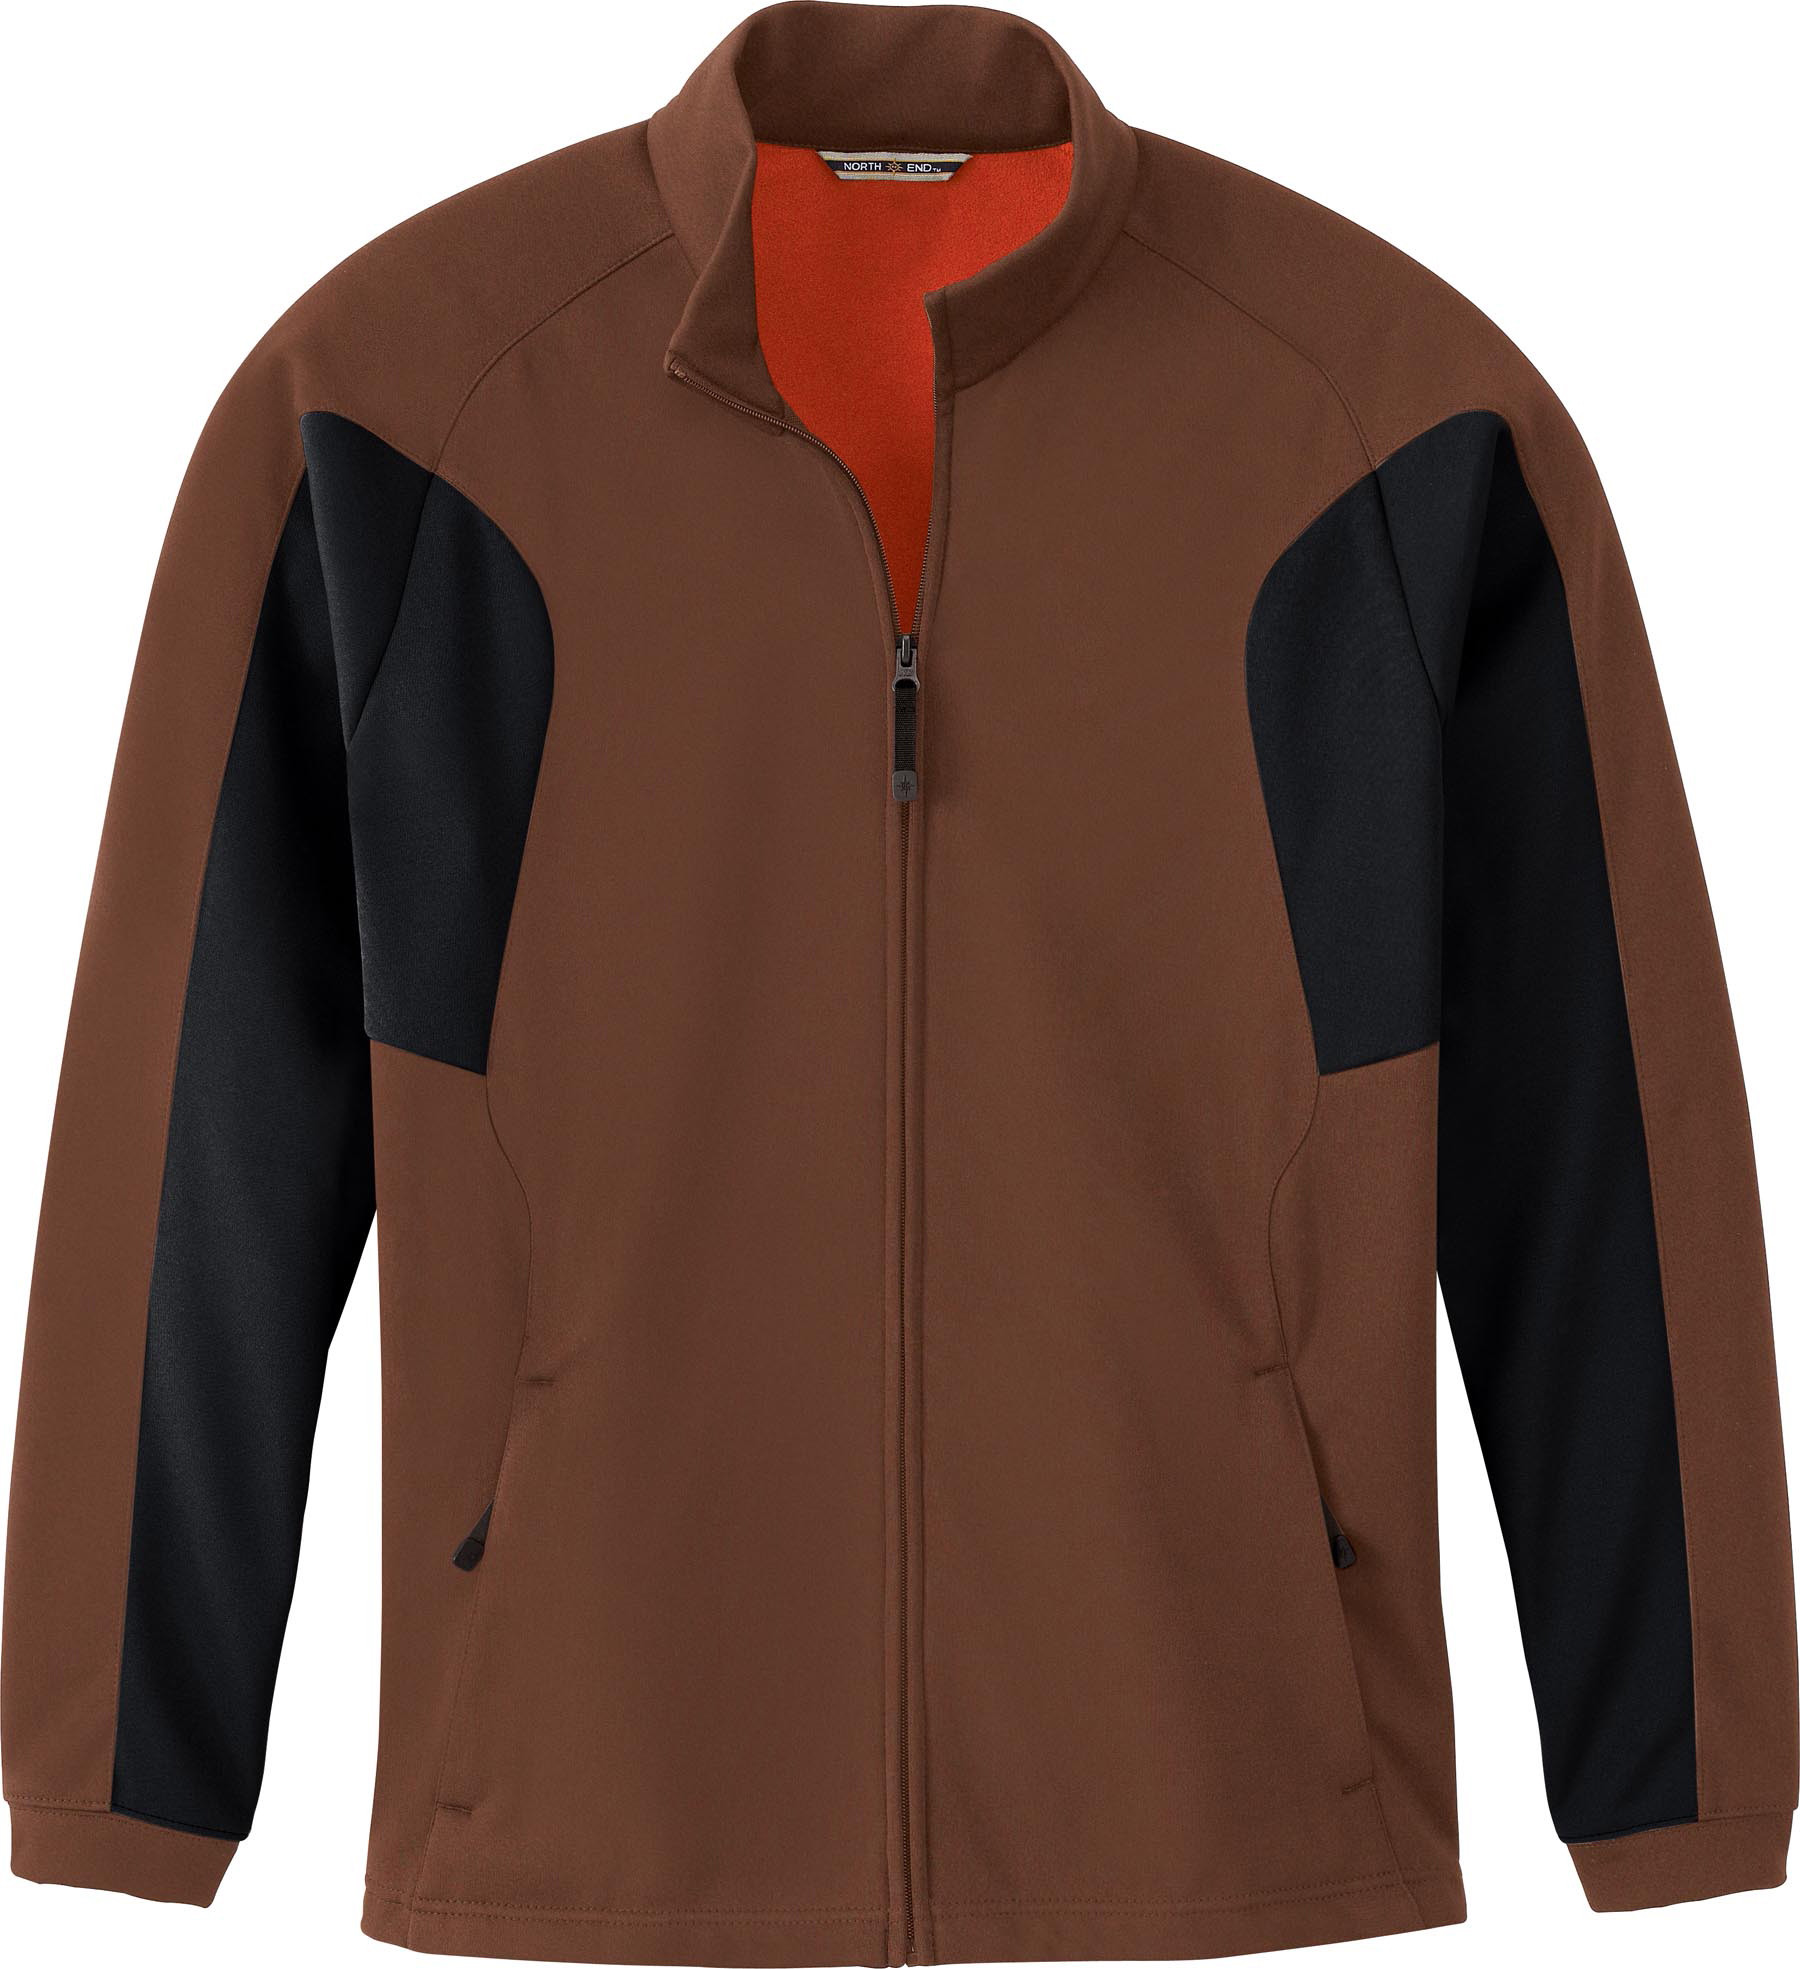 Ash City Bonded Fleece 88151 - Men's Bonded Fleece Jacket